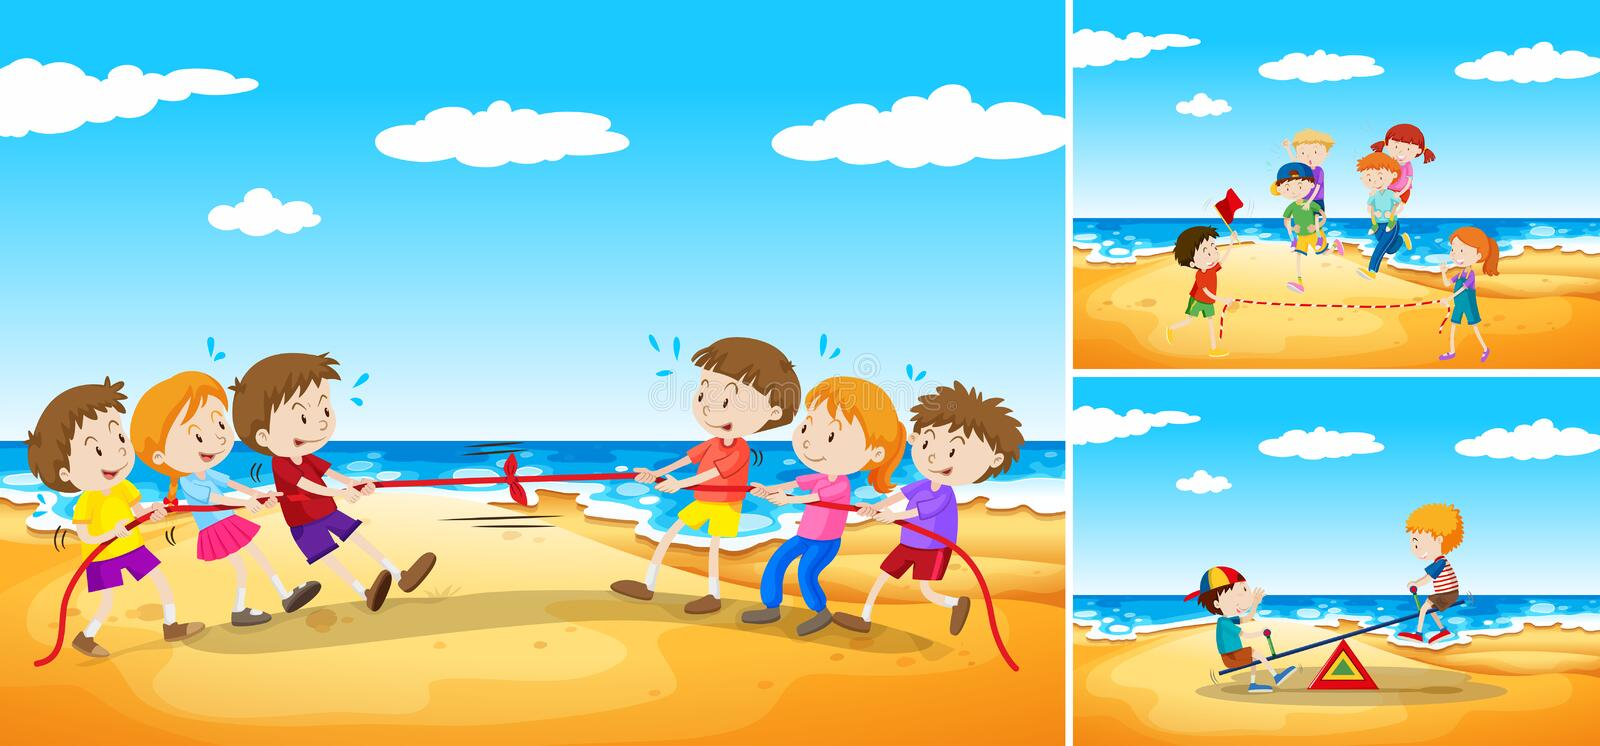 Children playing games on the beach. Illustration royalty free illustration